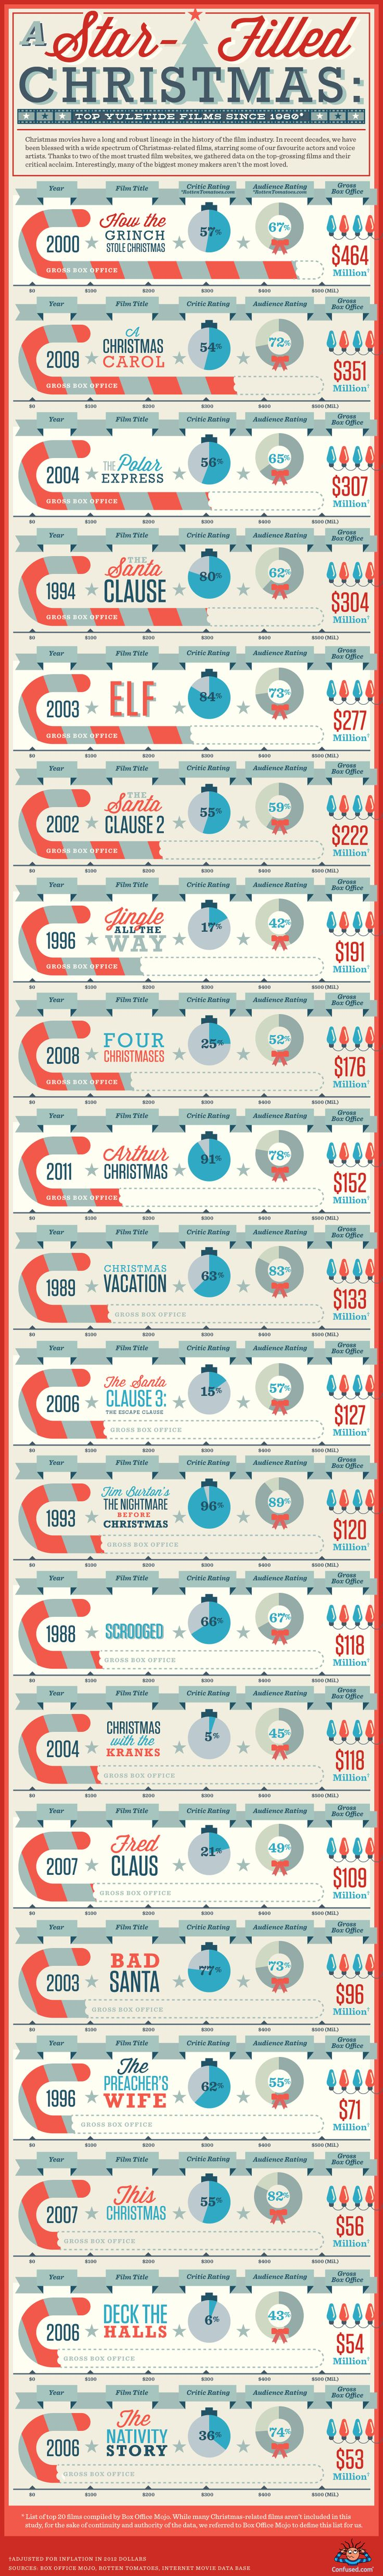 Top Christmas Movies since 1980 #infographic via @Joe Woolworth